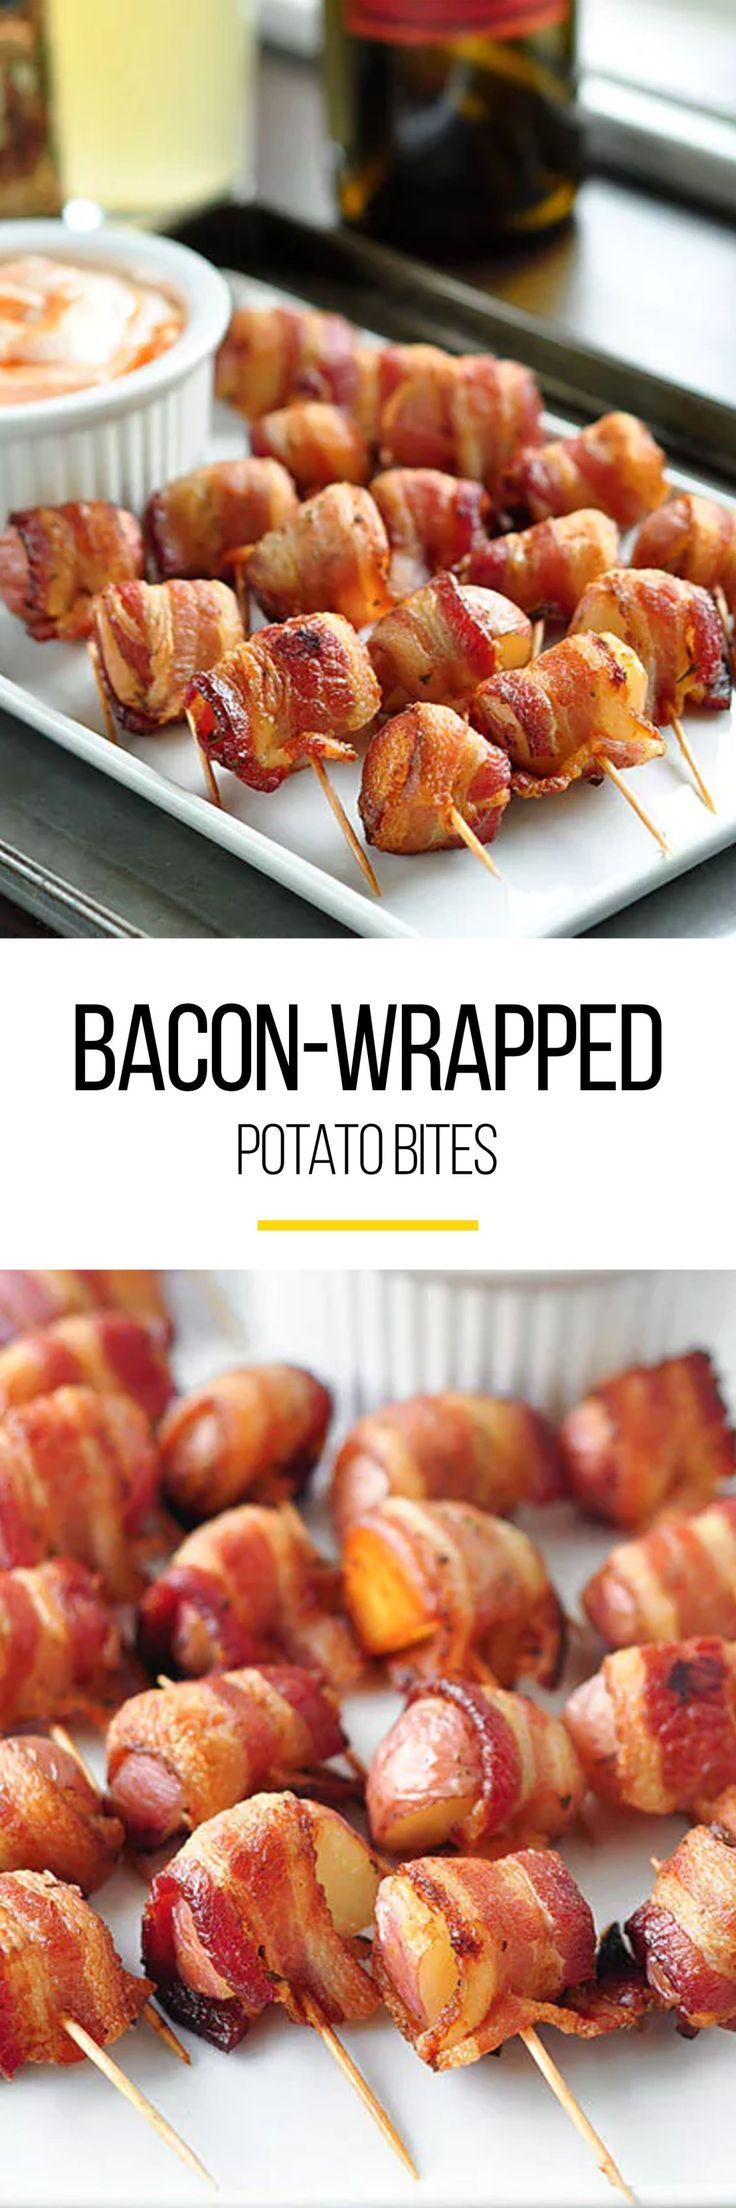 Bacon-Wrapped Potato Bites with Spicy Sour Cream Dipping Sauce Recipe. This is one of the best party food ideas around! Great for a tailgate, a sports party of any kind - even the superbowl! Also fancy enough for a one-bite appetizer for new years eve for crowds of adults and children alike. Snacks like this are cheap, SIMPLE, and DELICIOUS.